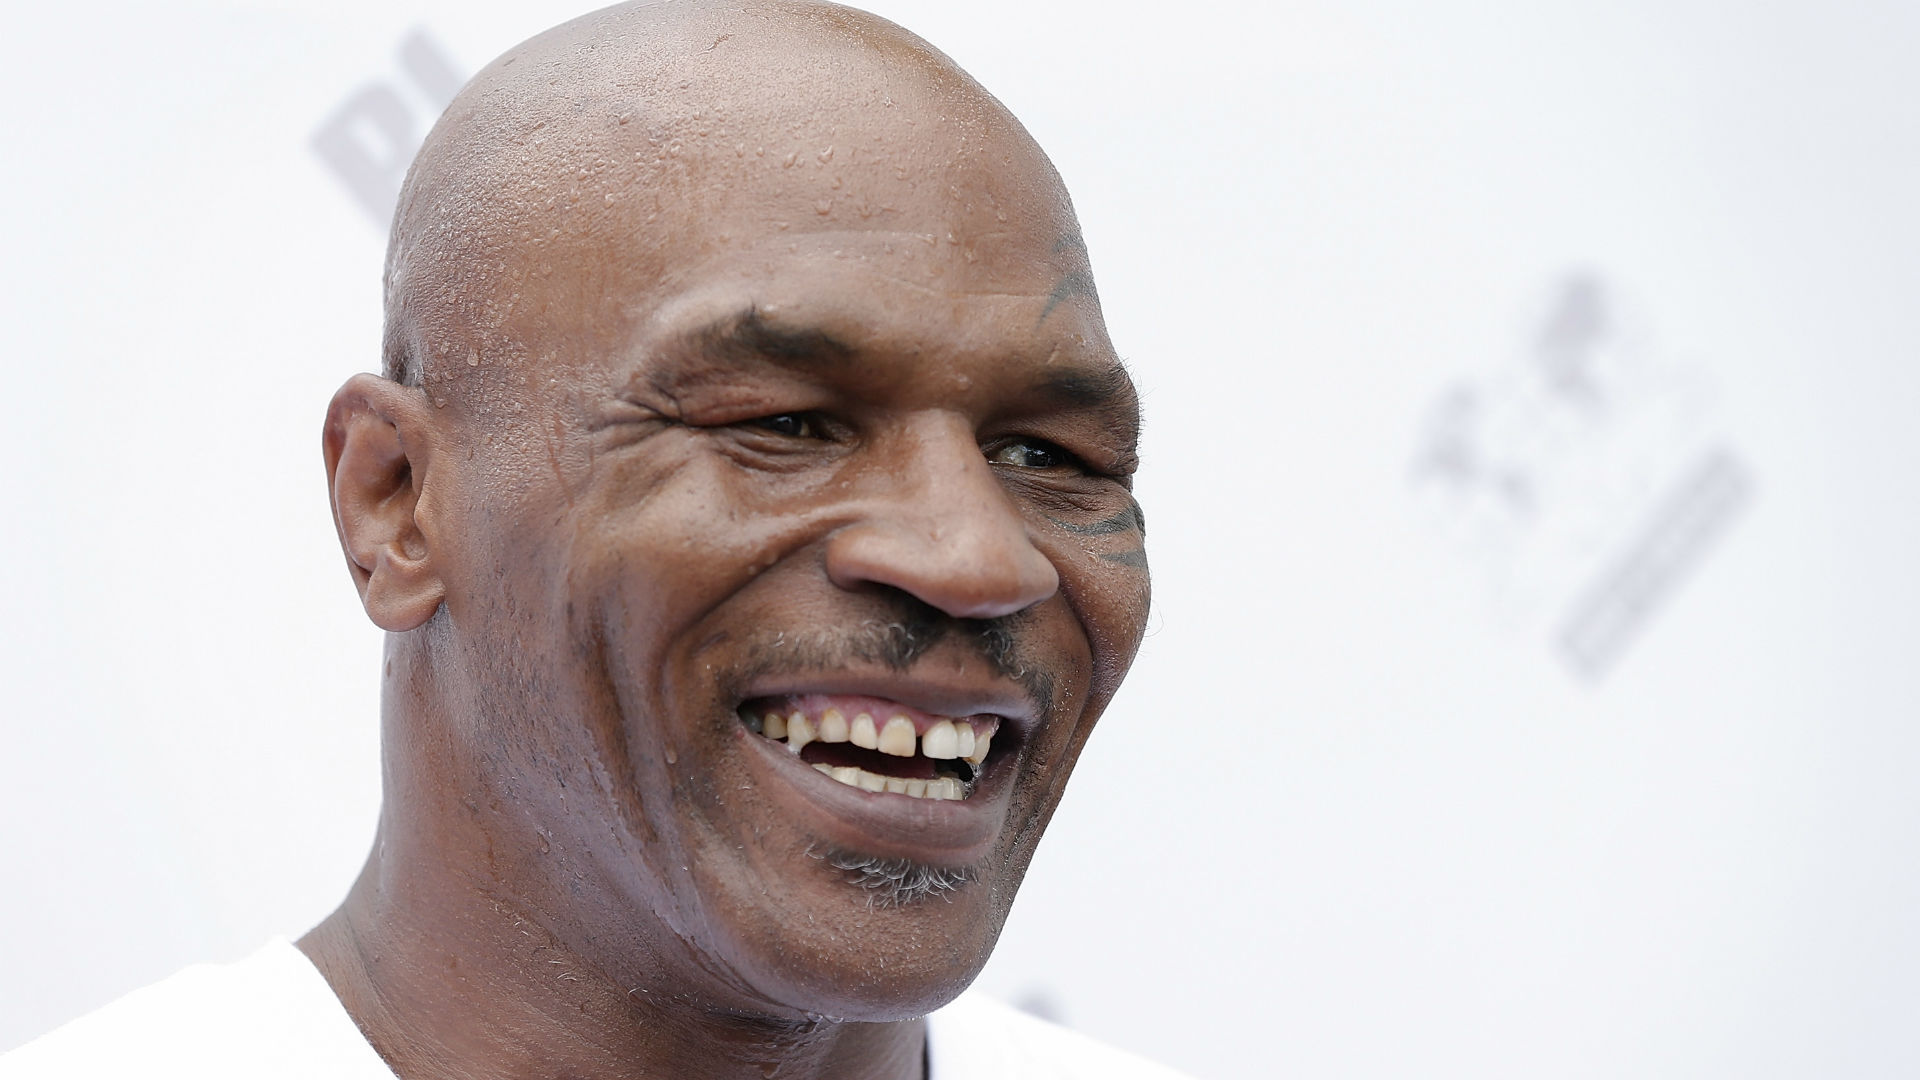 Mike Tyson For Desktop Background